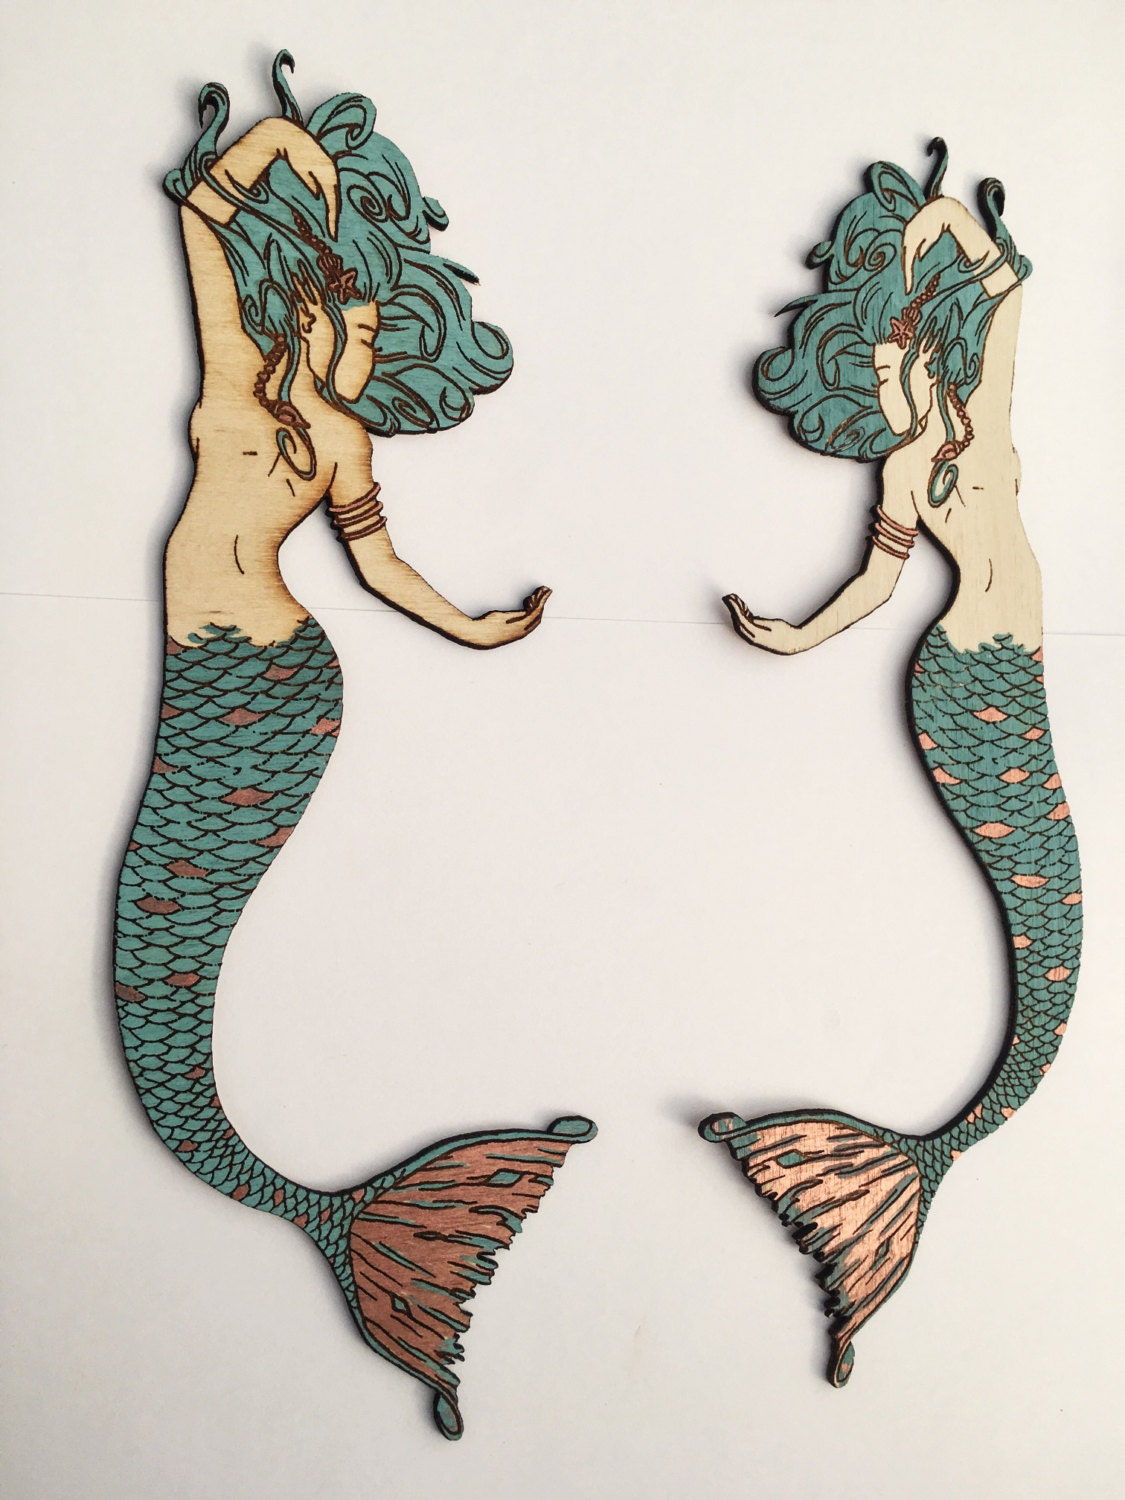 Wooden Mermaid Wall Decor large mermaid wall decor with copper leaf accents, decorative